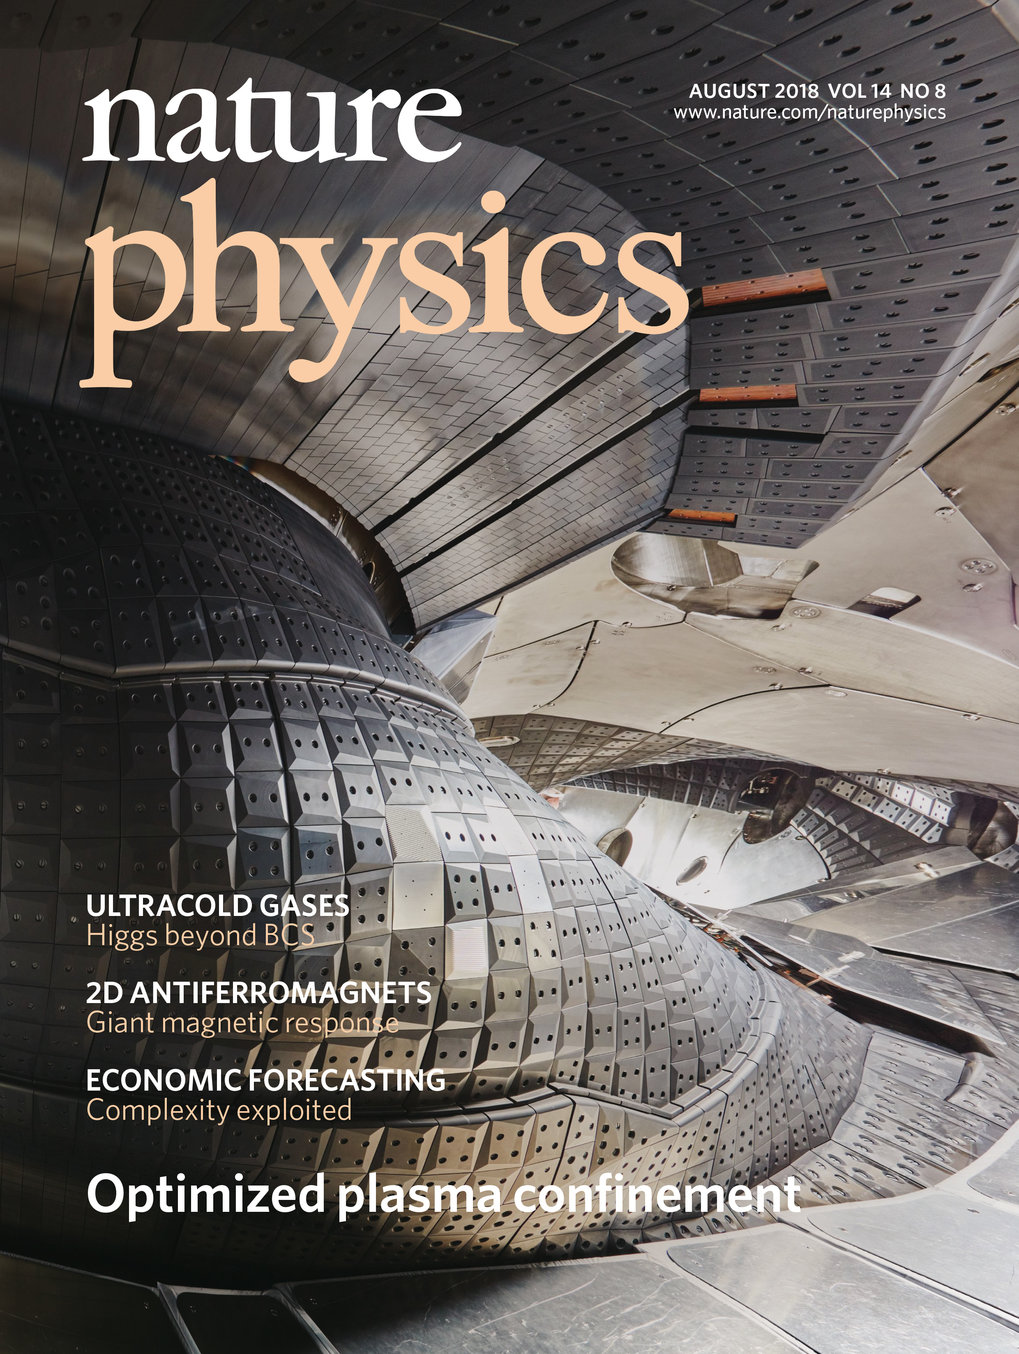 Wendelstein 7-X makes the cover